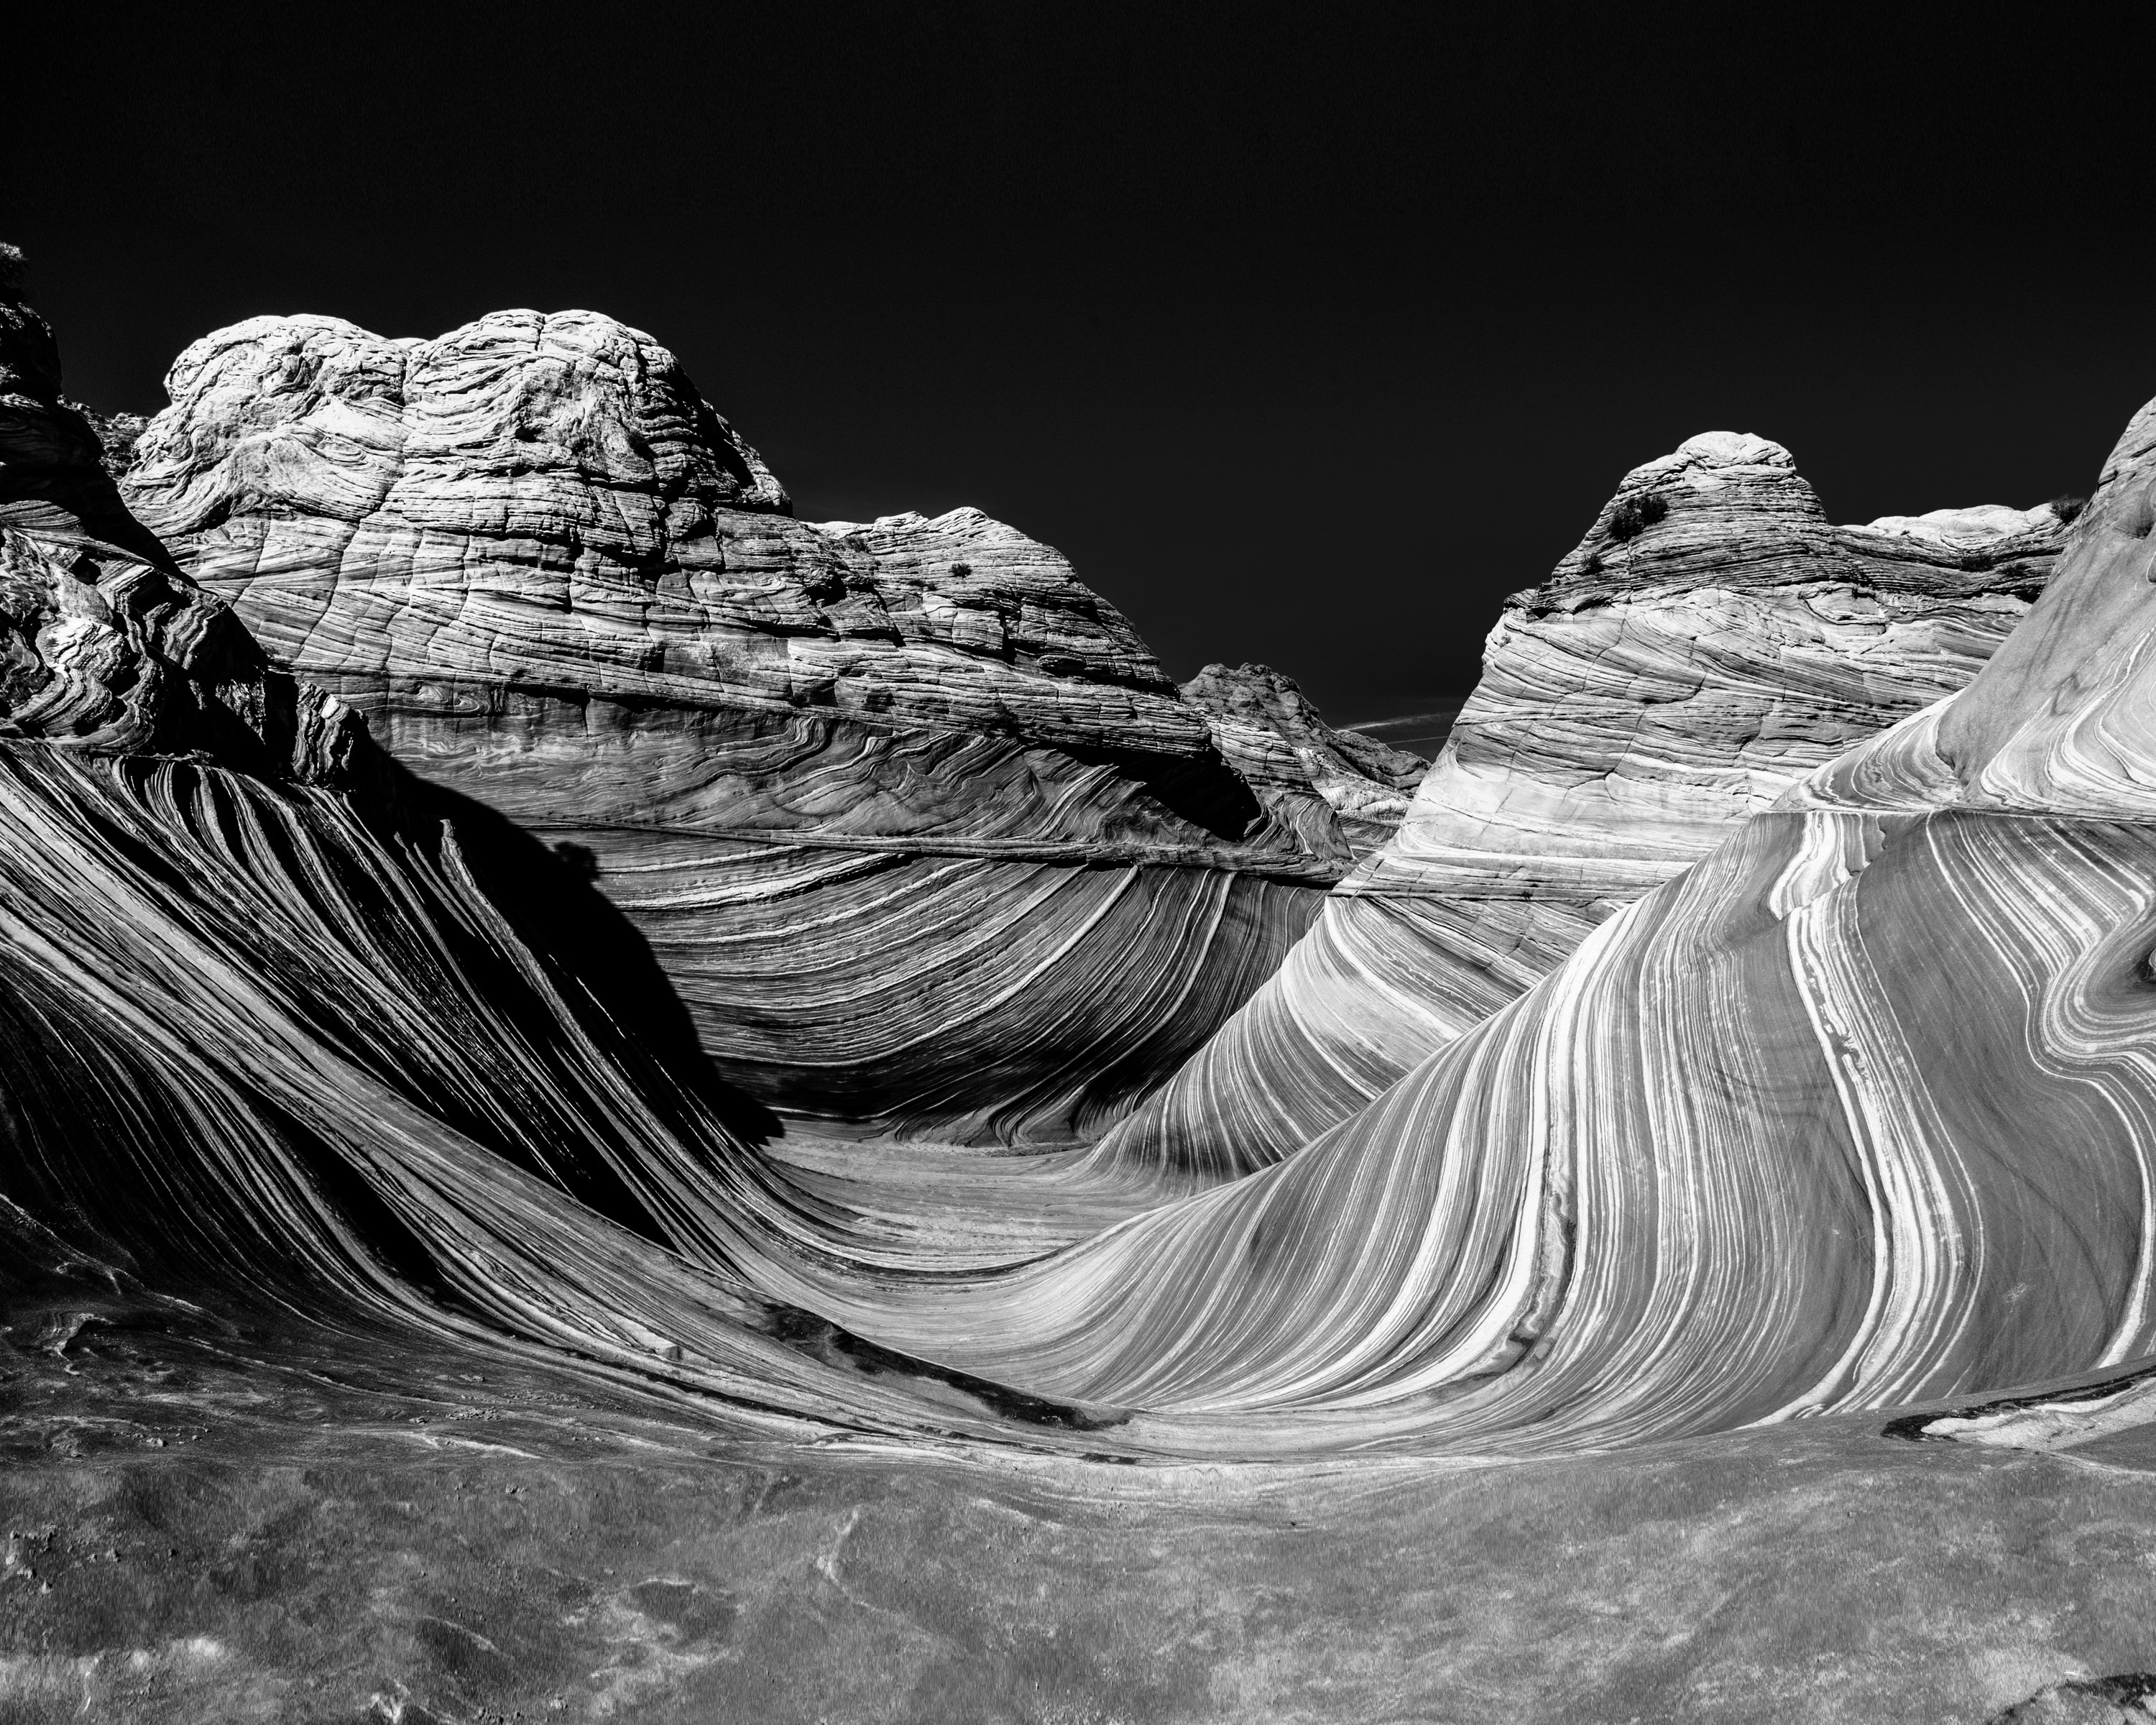 Sandstone forms wavy lines against rocky mountain formations